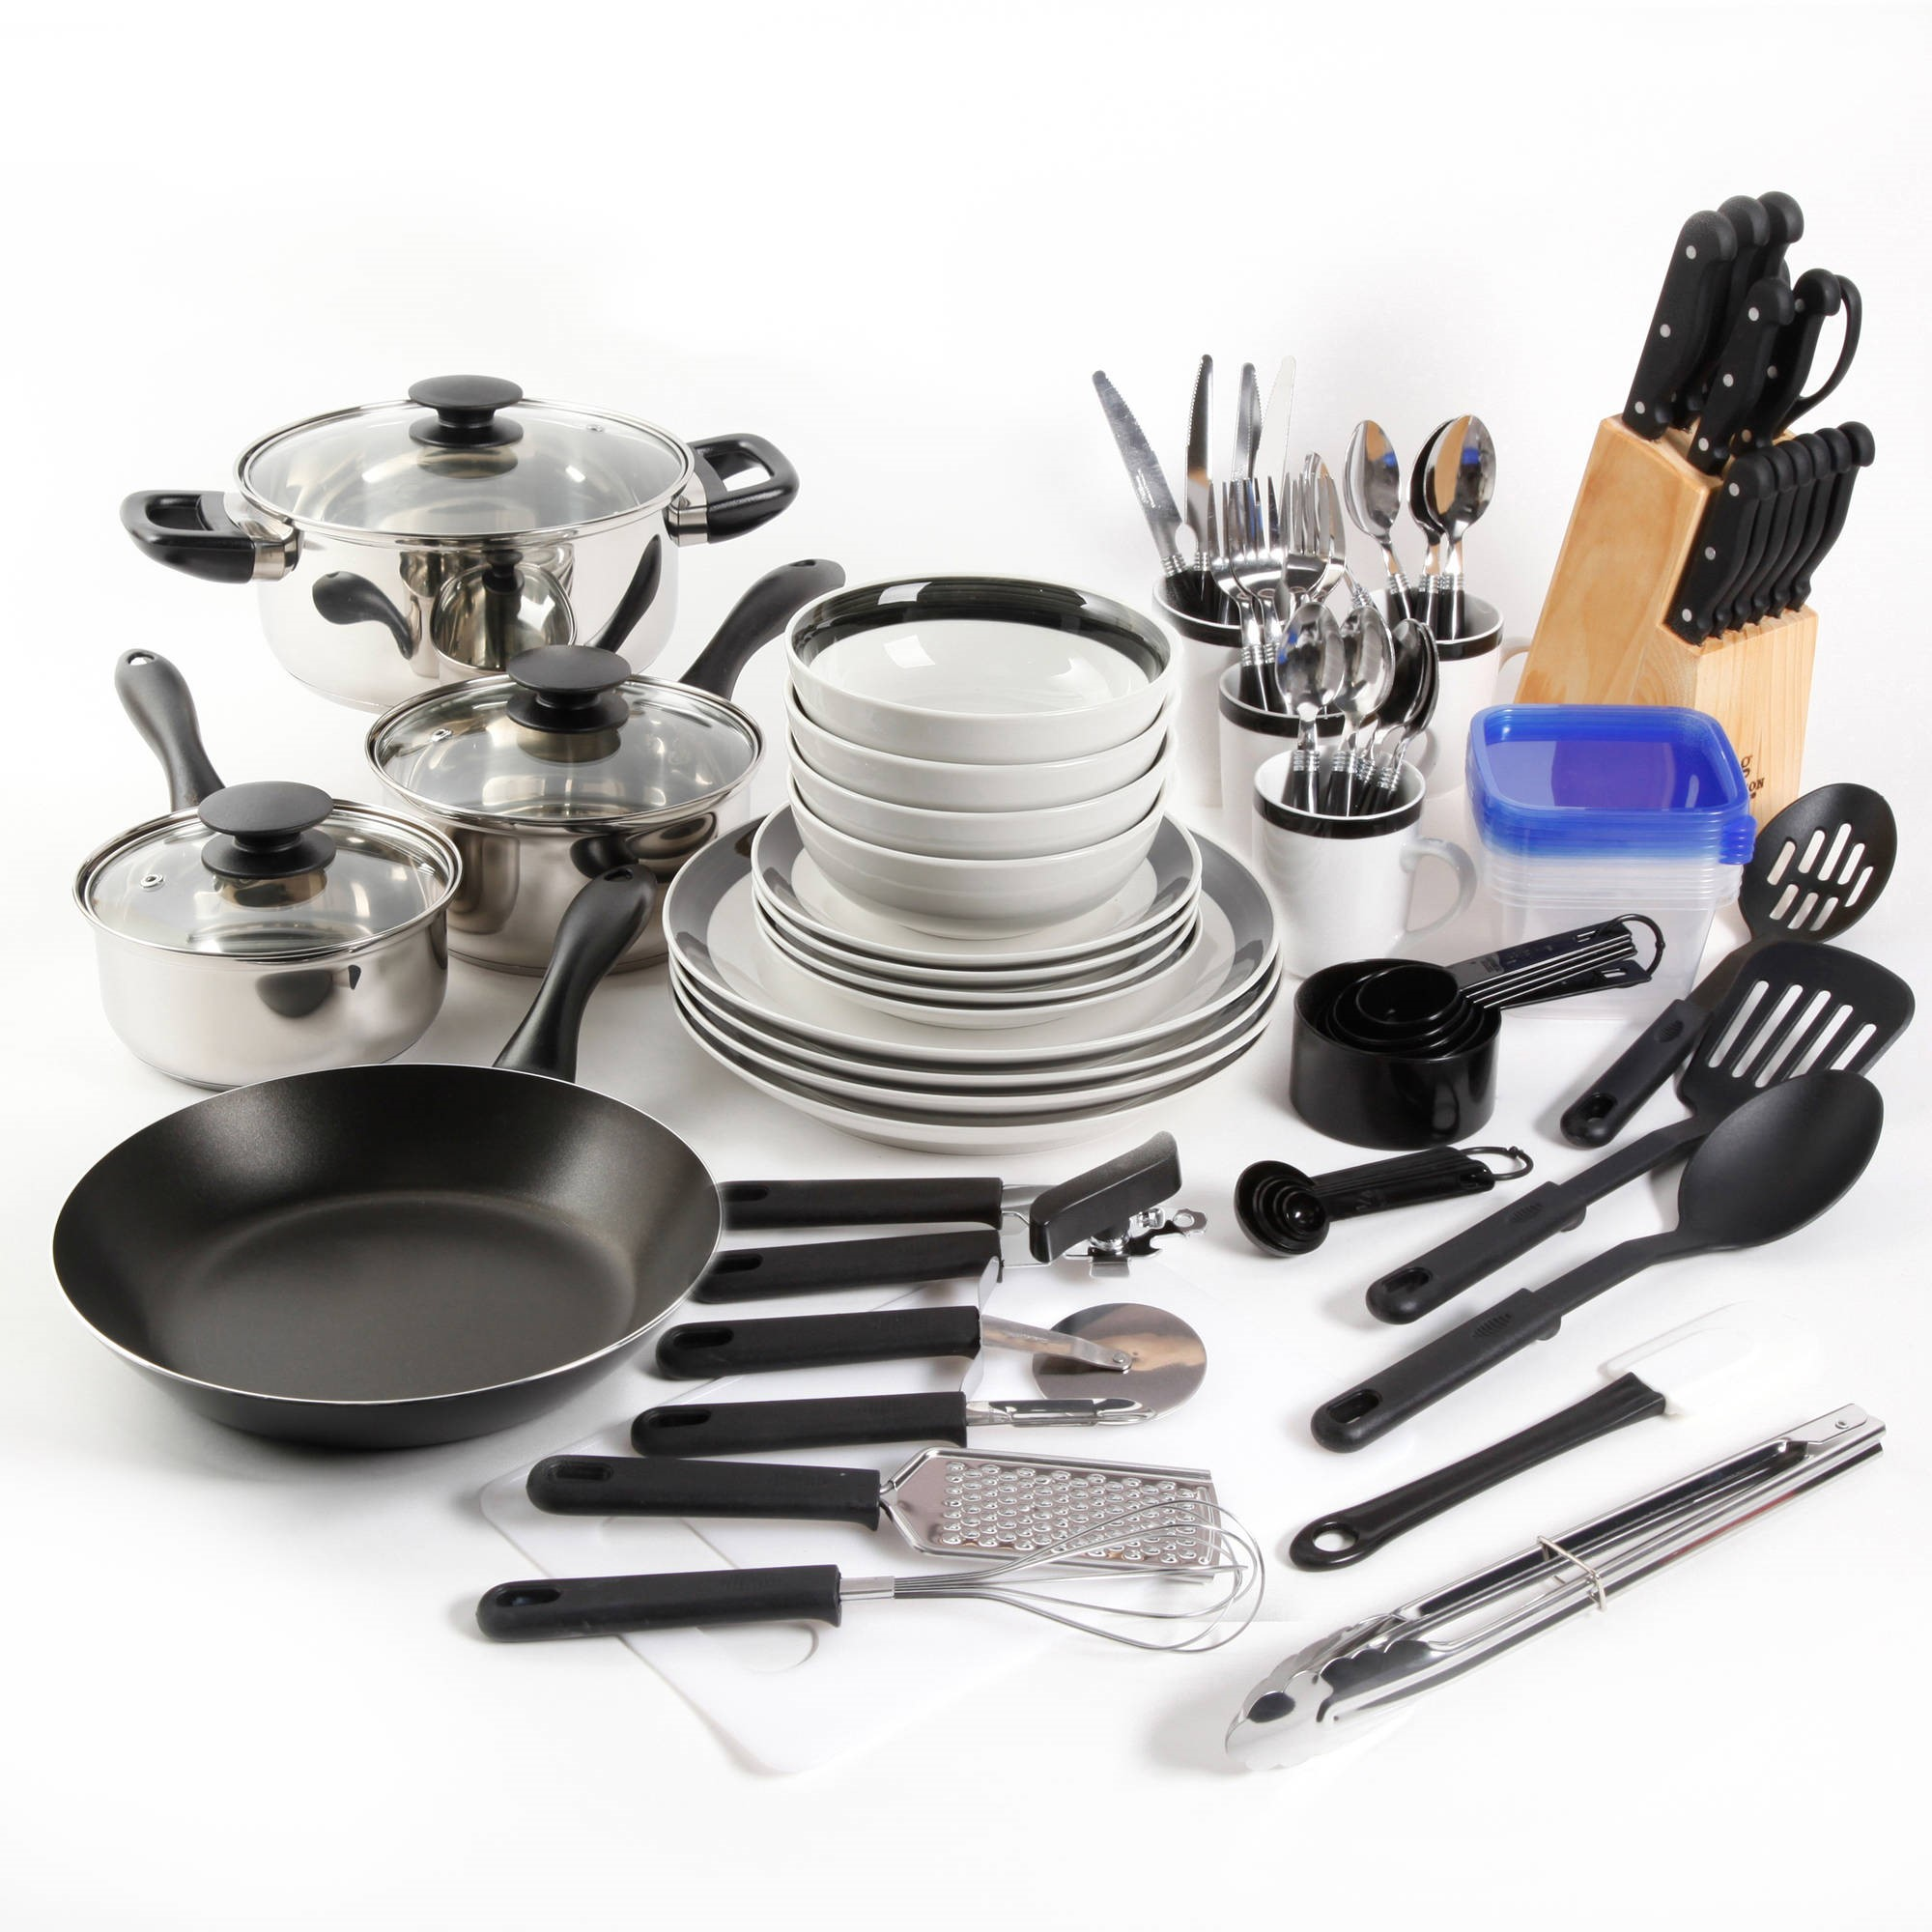 gibson home essential total kitchen 83-piece combo set - walmart